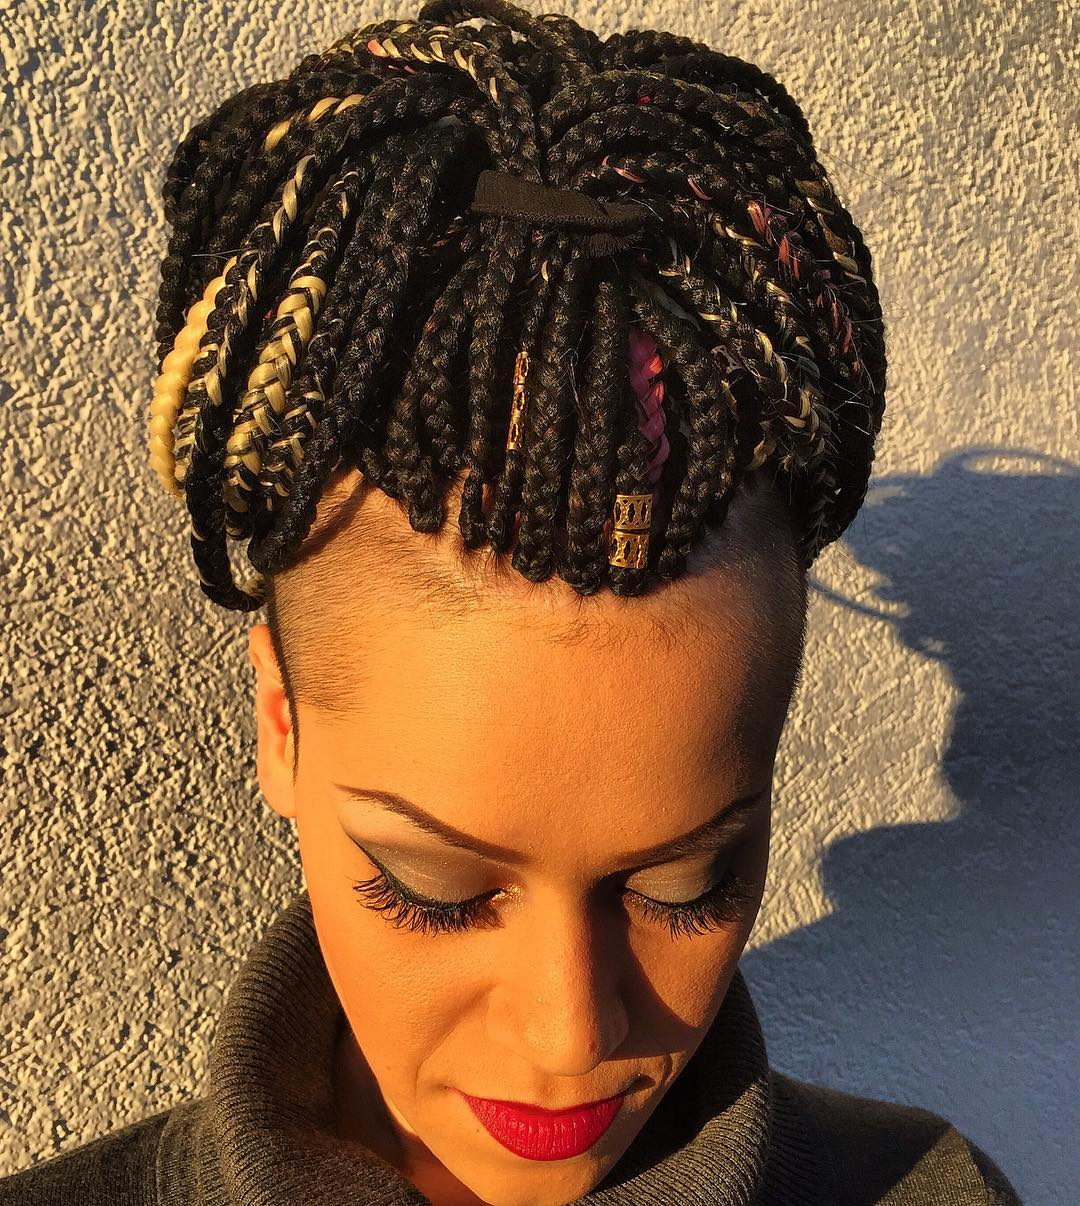 Watch 20 Amazing Fulani Braids for Women of All Ages video